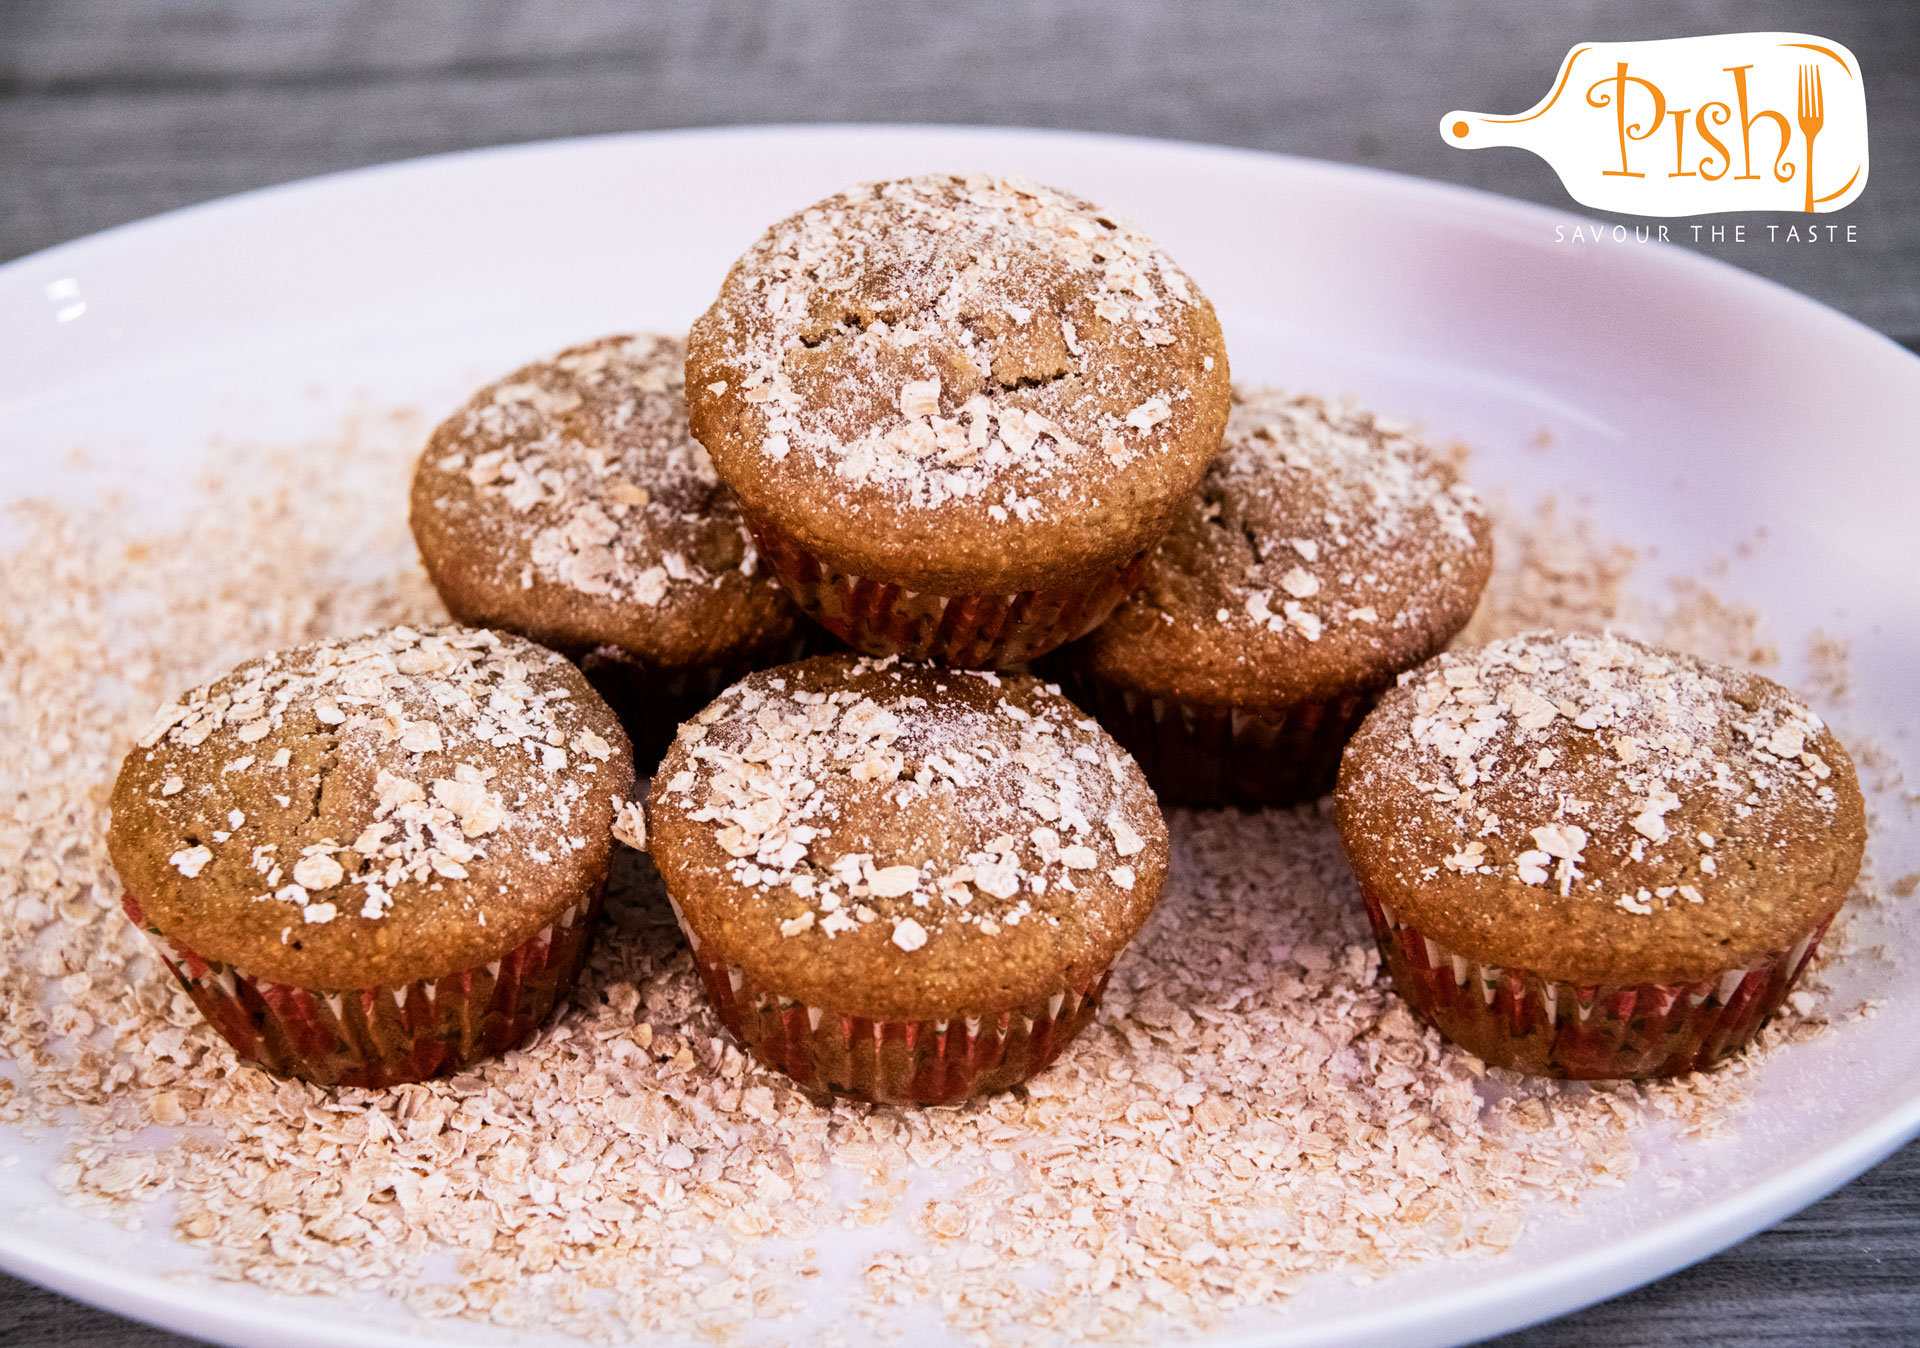 Peanut Butter and Oatmeal Muffins